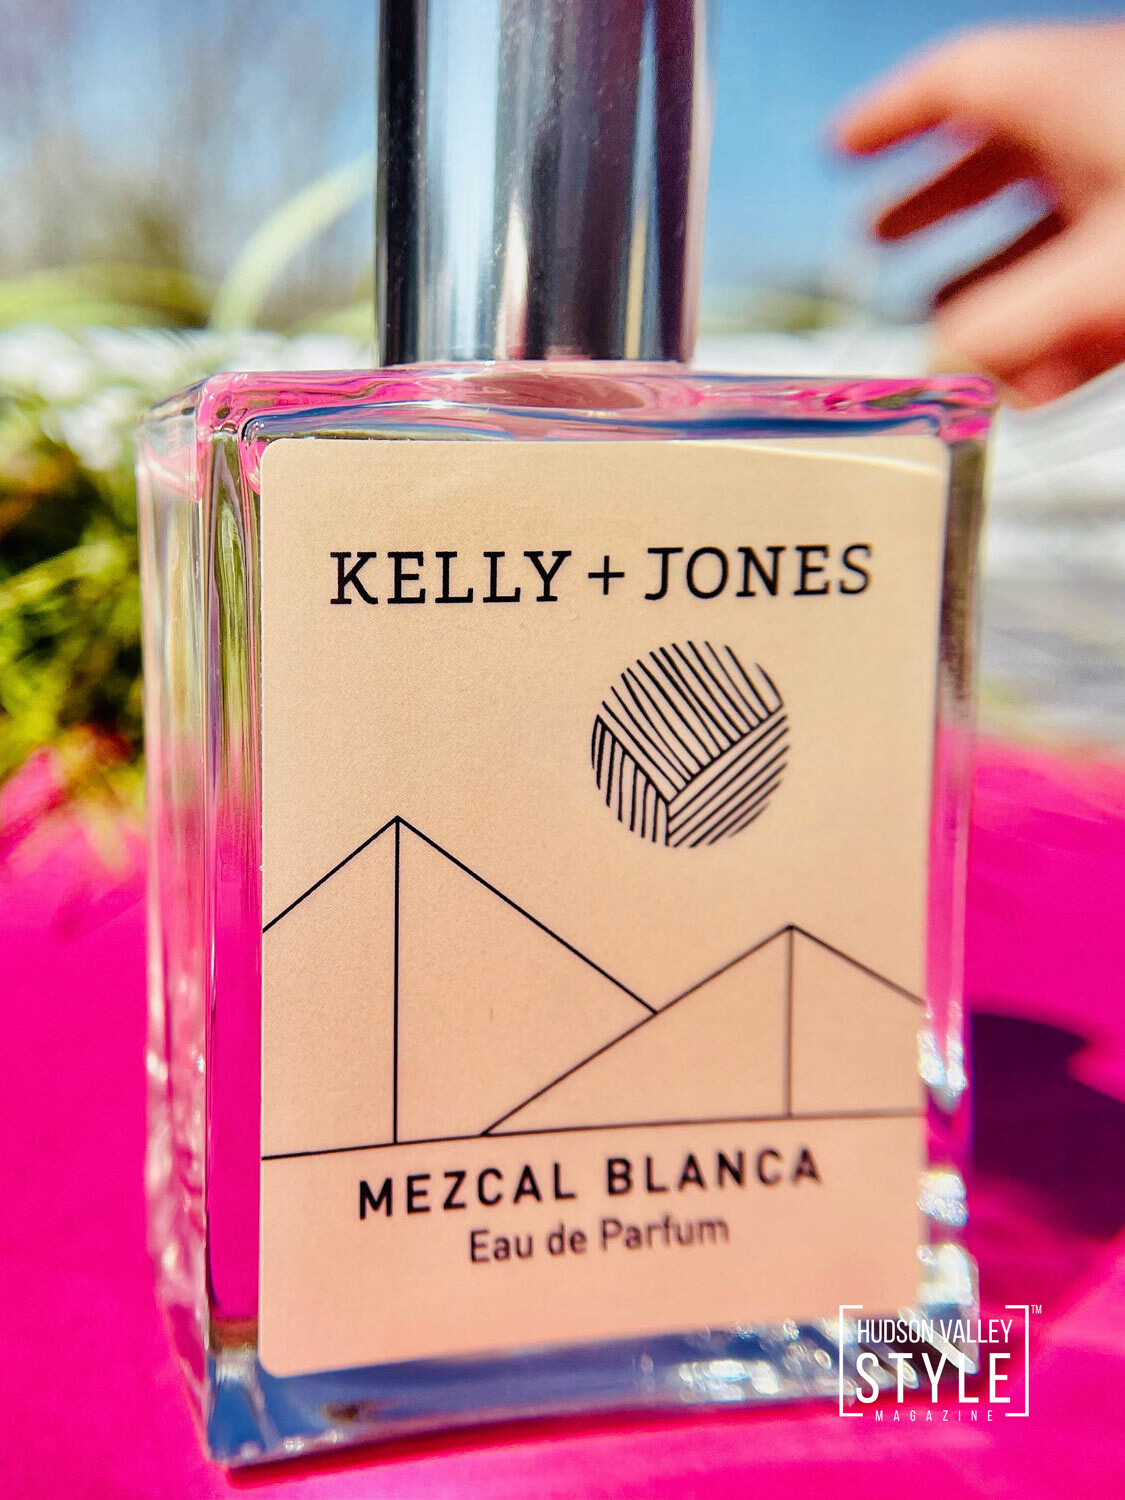 How To Choose A Perfume? – Perfumes 101 with Kelly Jones